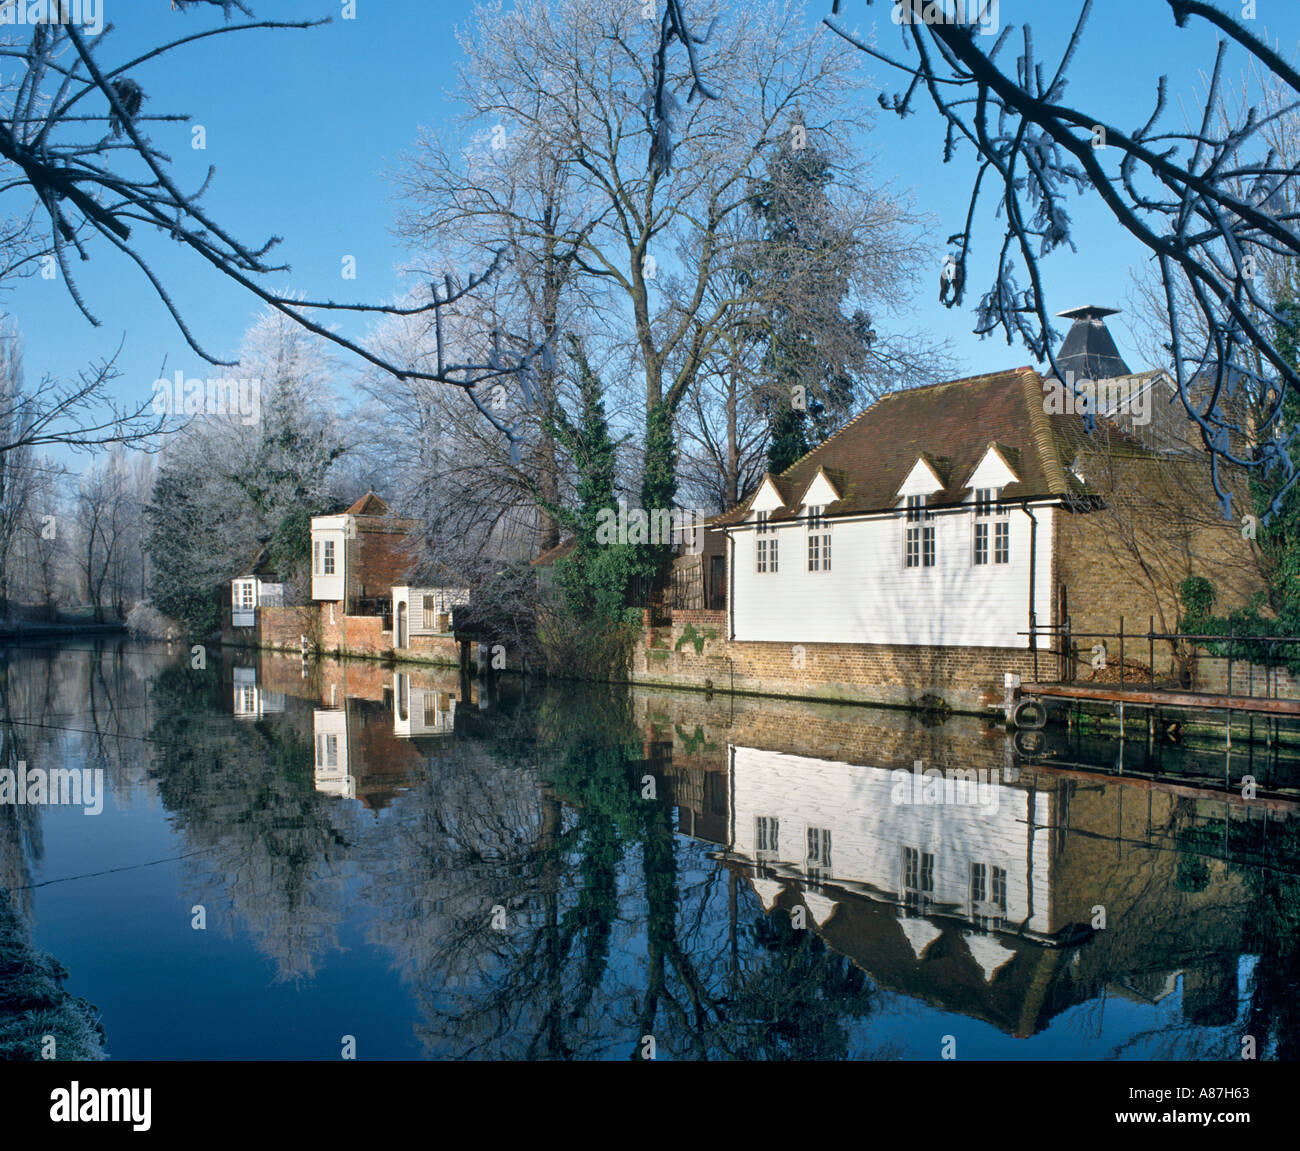 River Lea on a frosty winter morning, Ware, Hertfordshire, United Kingdom - Stock Image